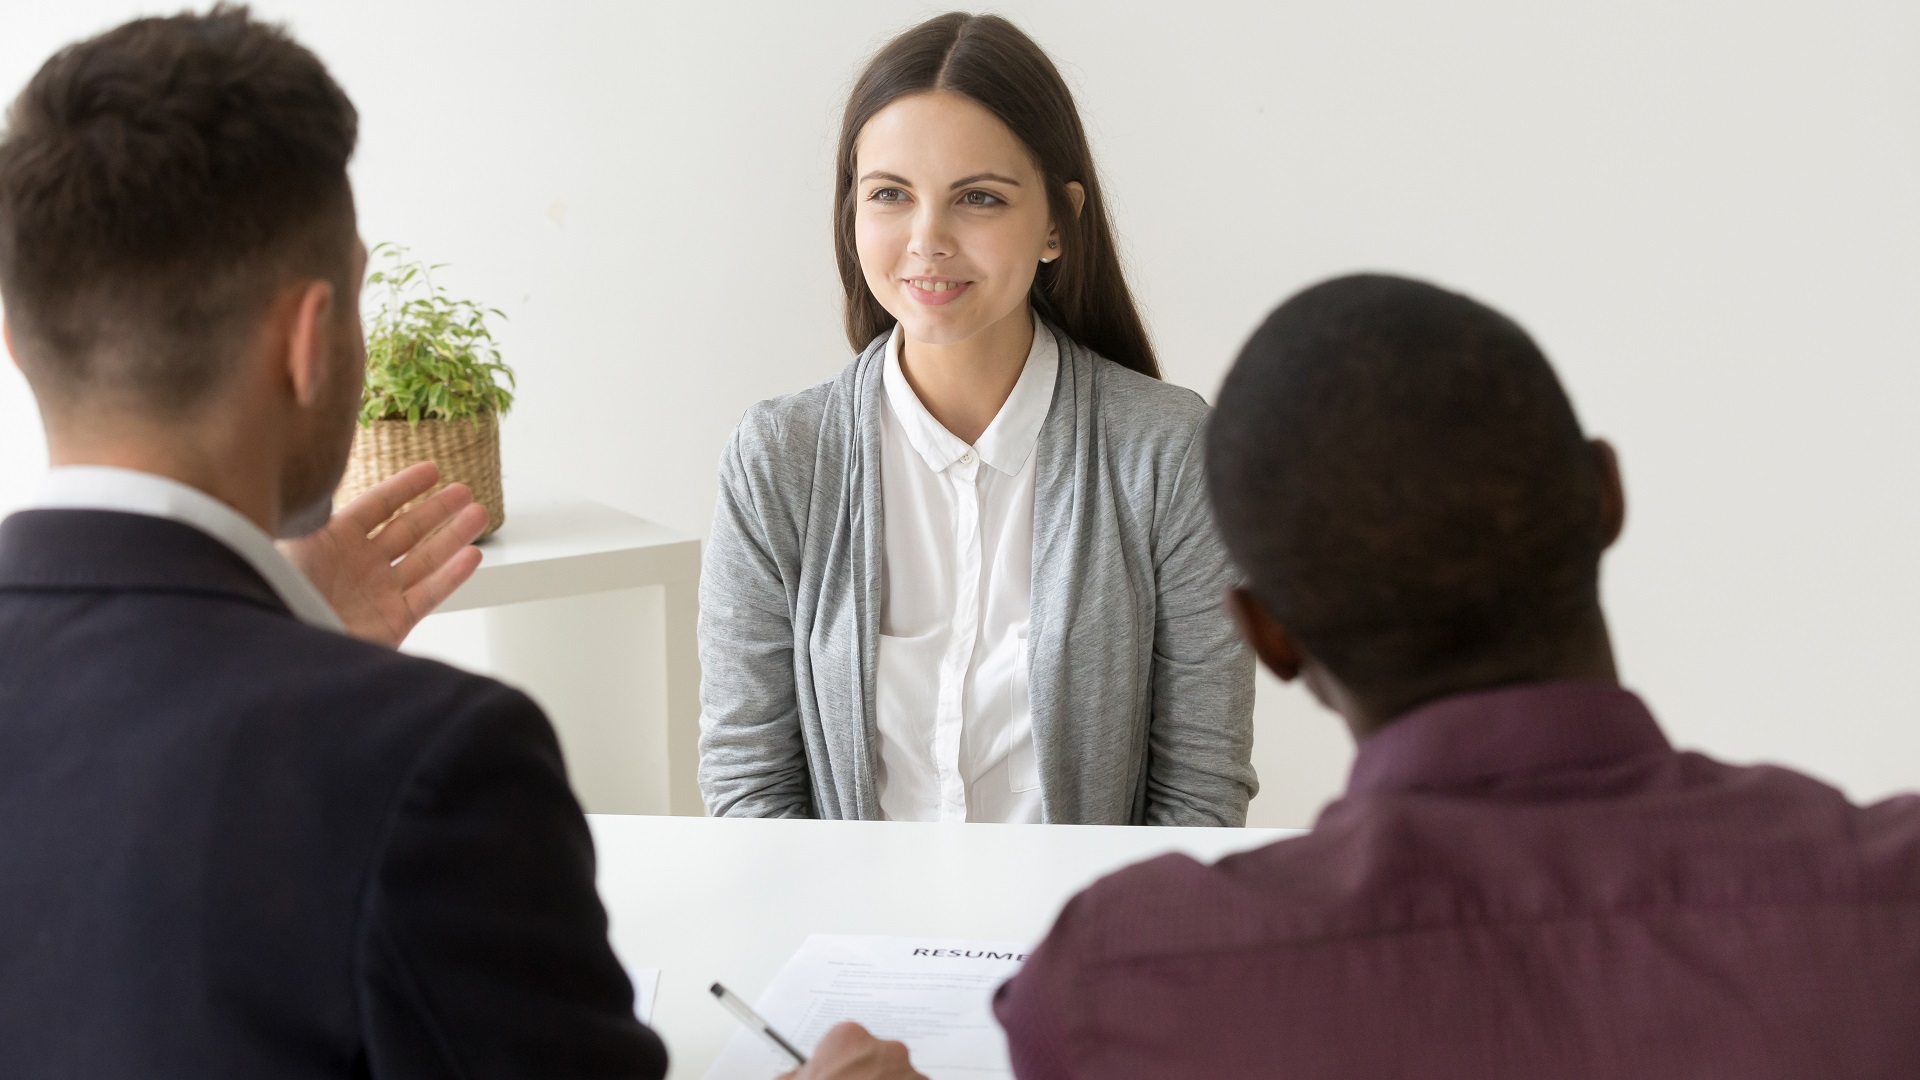 5 Most Anticipated Pandemic-Related Job Interview Questions